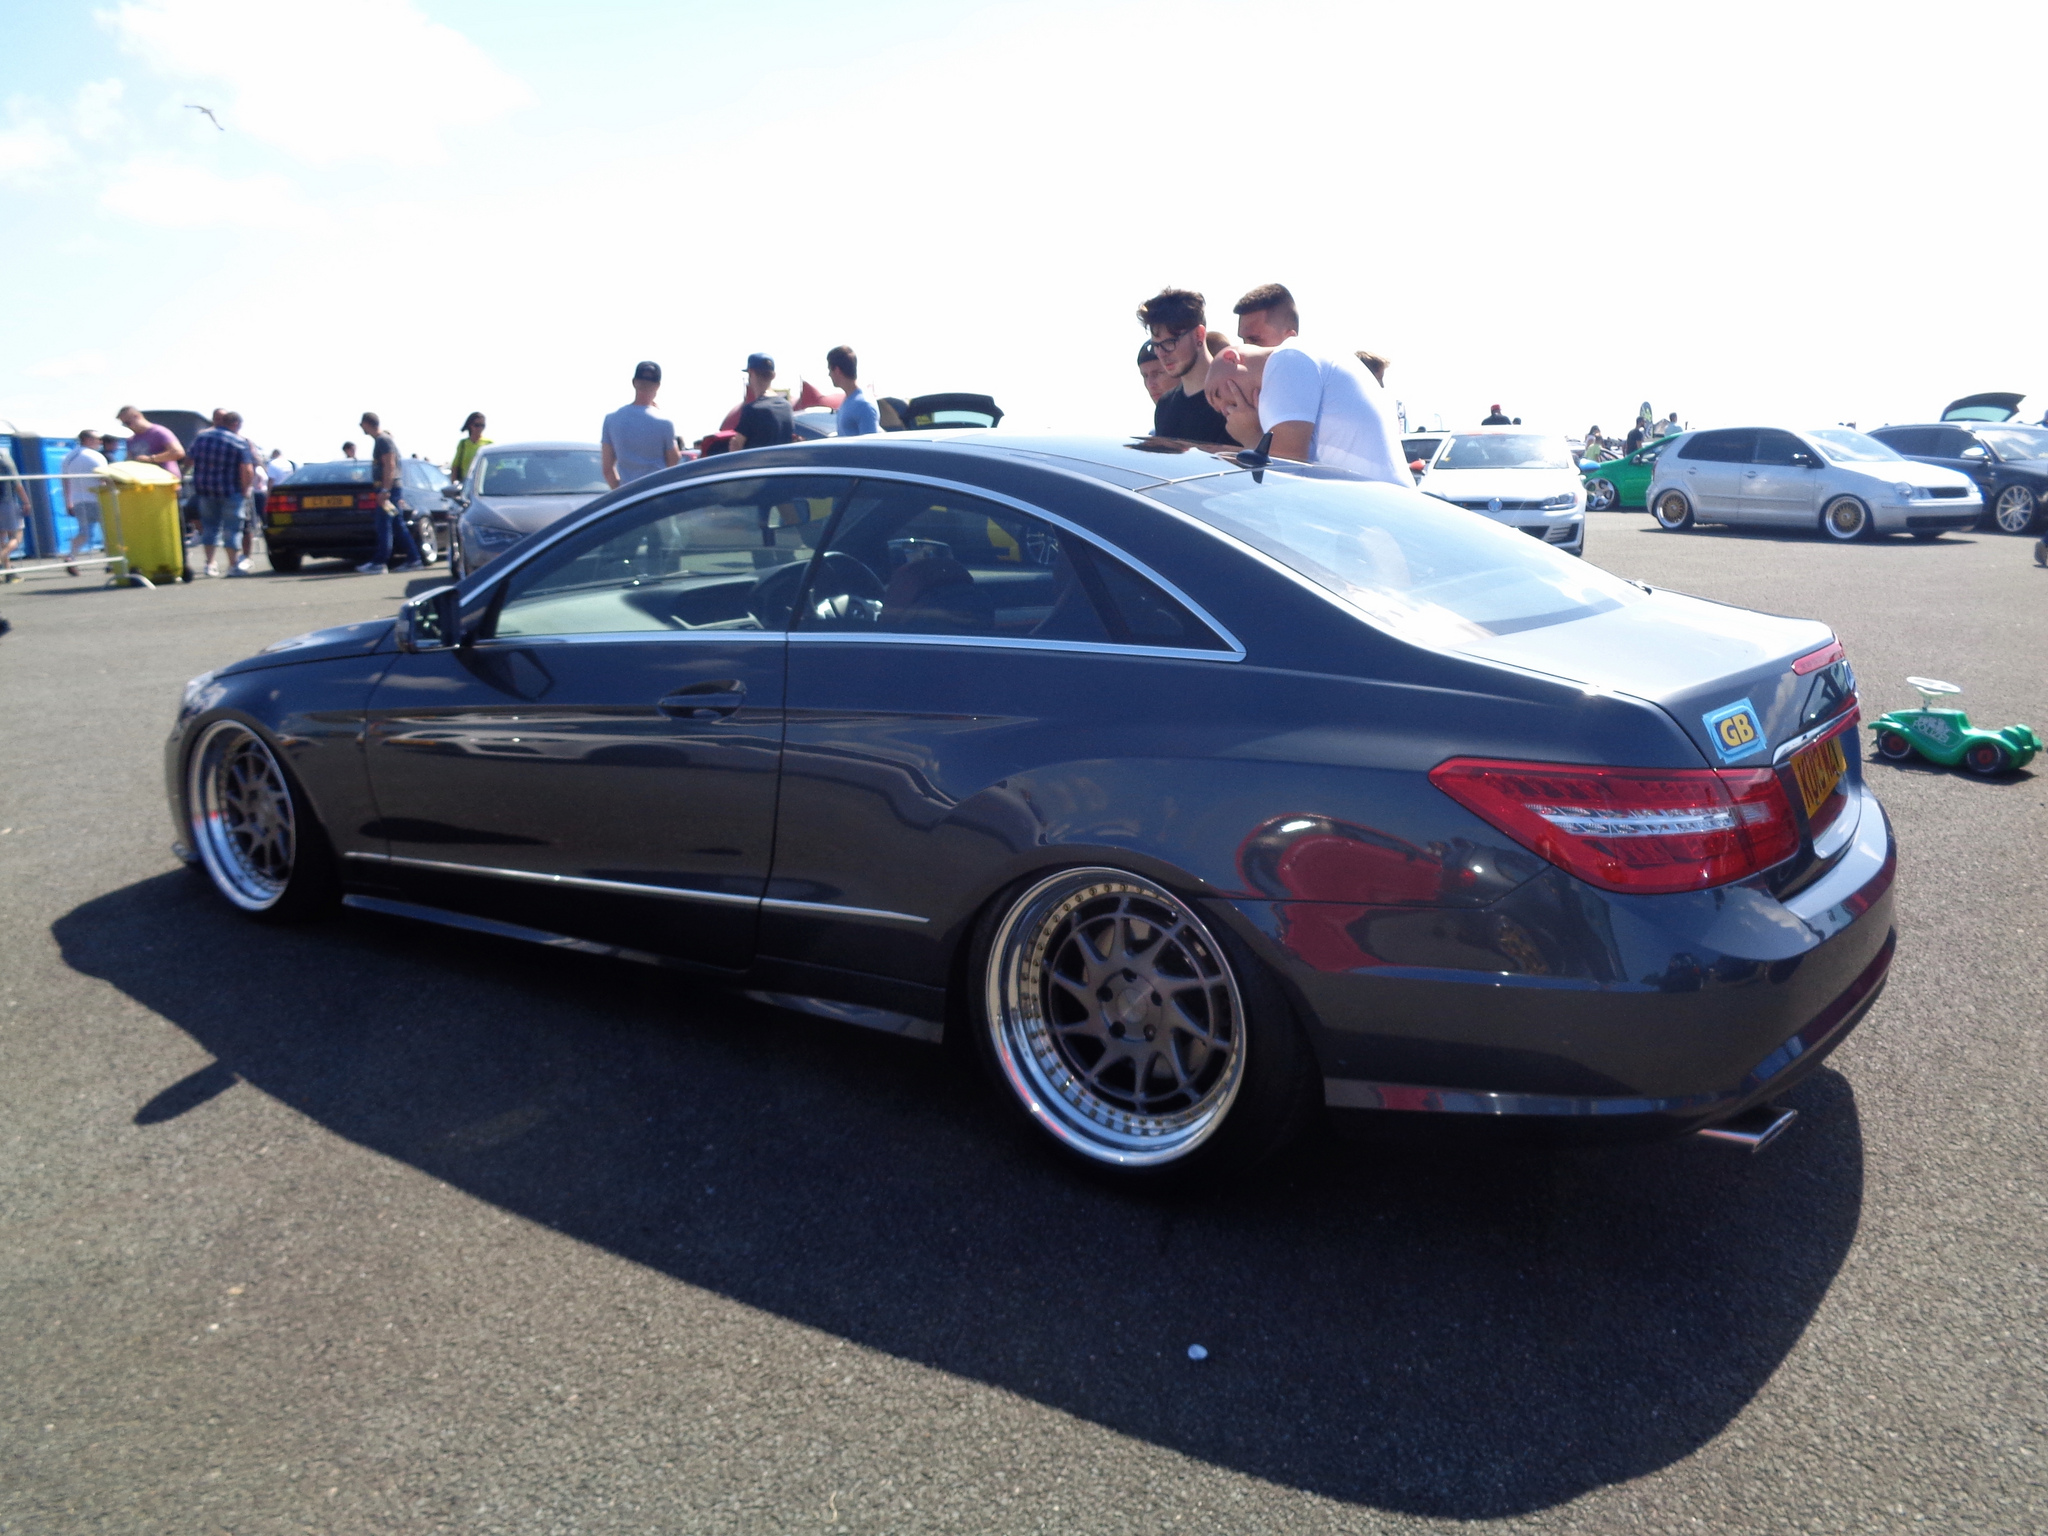 Mercedes Benz Coupe >> Mercees E Class Coupe W212 Tuning (2) | Tuning